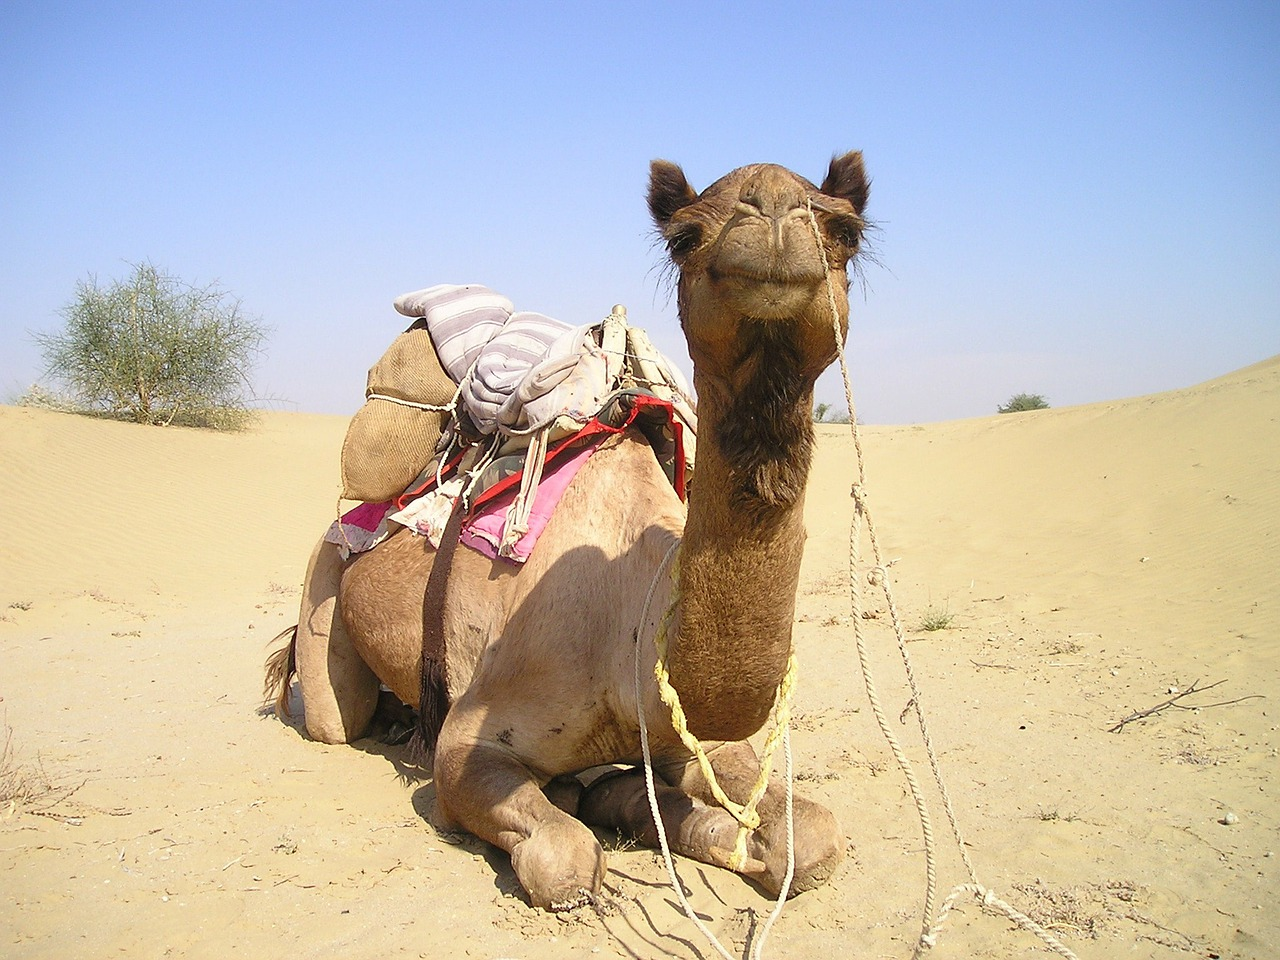 india camel desert free picture